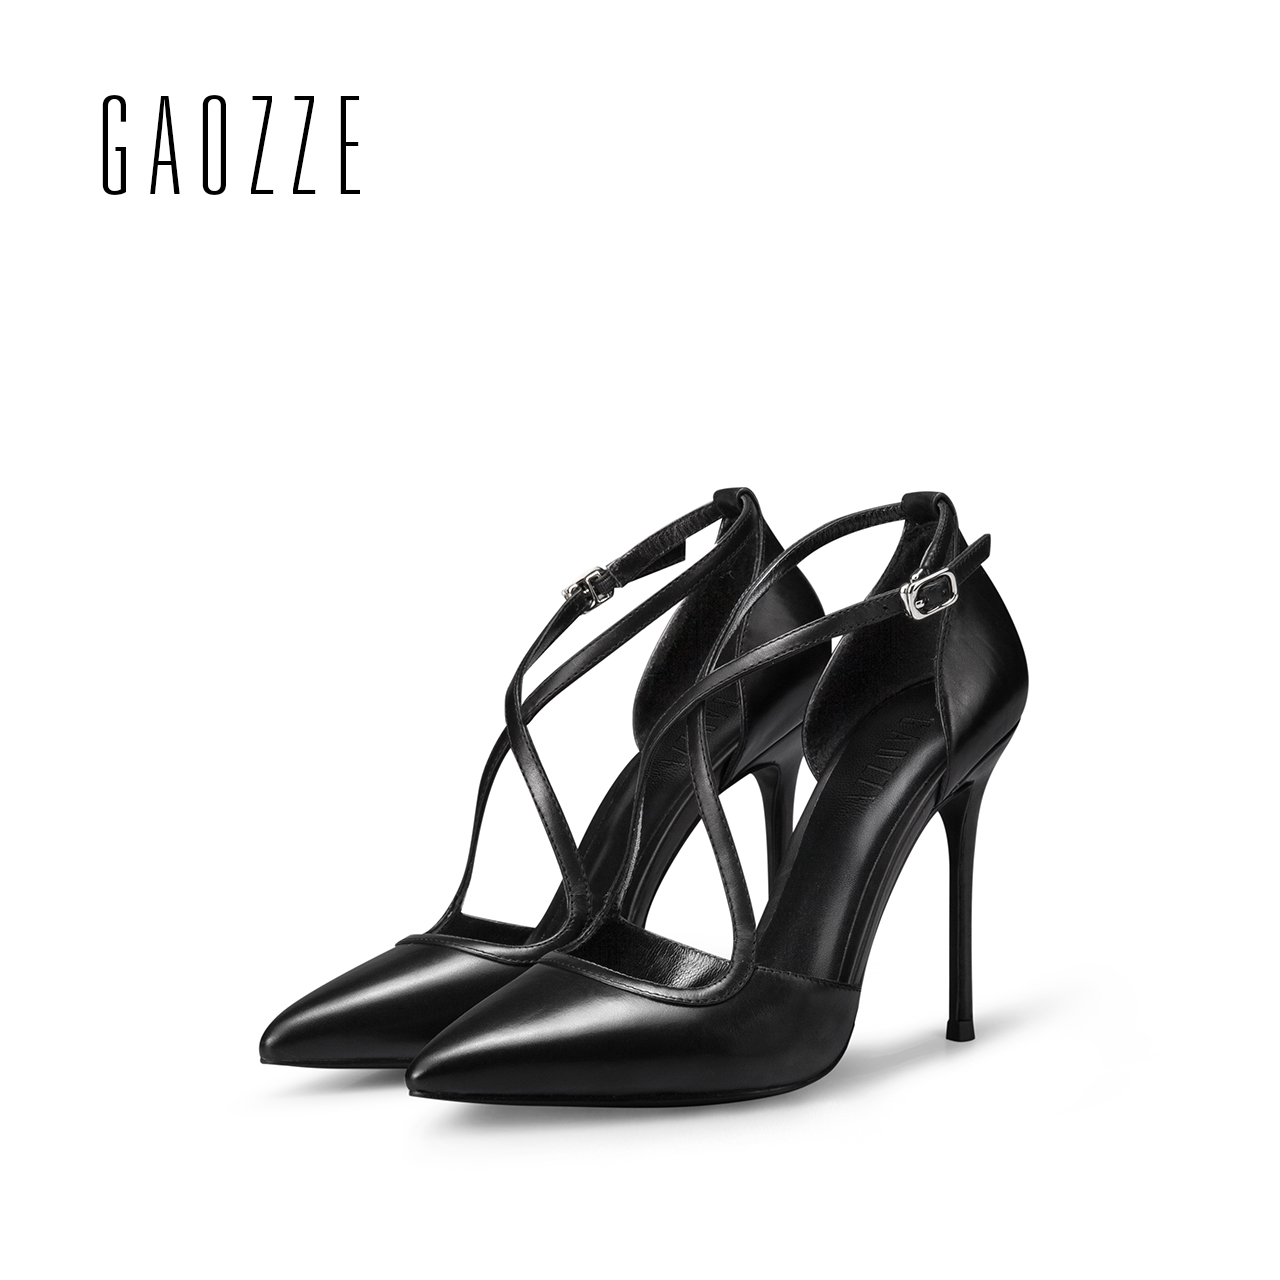 GAOZZE female high-heeled sandals cross straps leather sandals Black sexy high heels pumps pointed toe women shoes spring 2017 fashionable women s sandals with cross straps and pu leather design